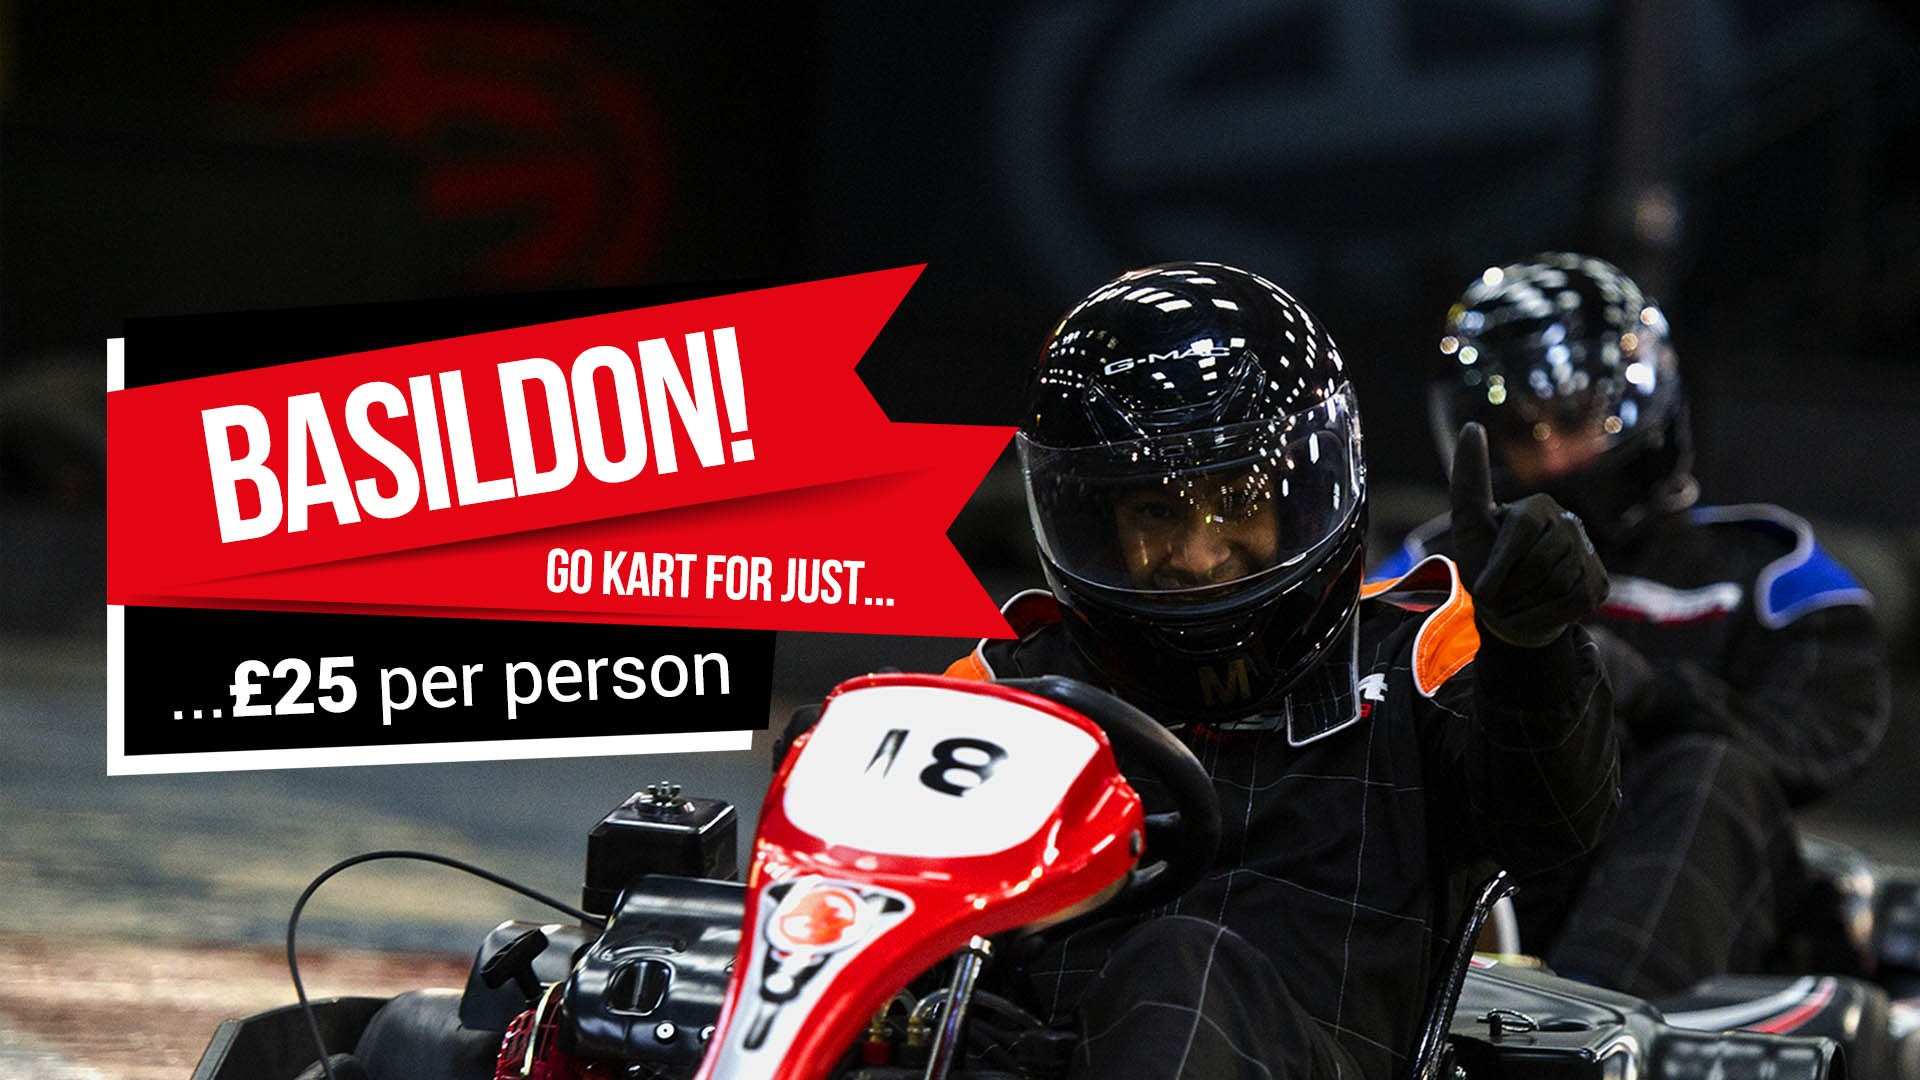 UNBEATABLE GO KARTING OFFERS - Basildon Opening Offer